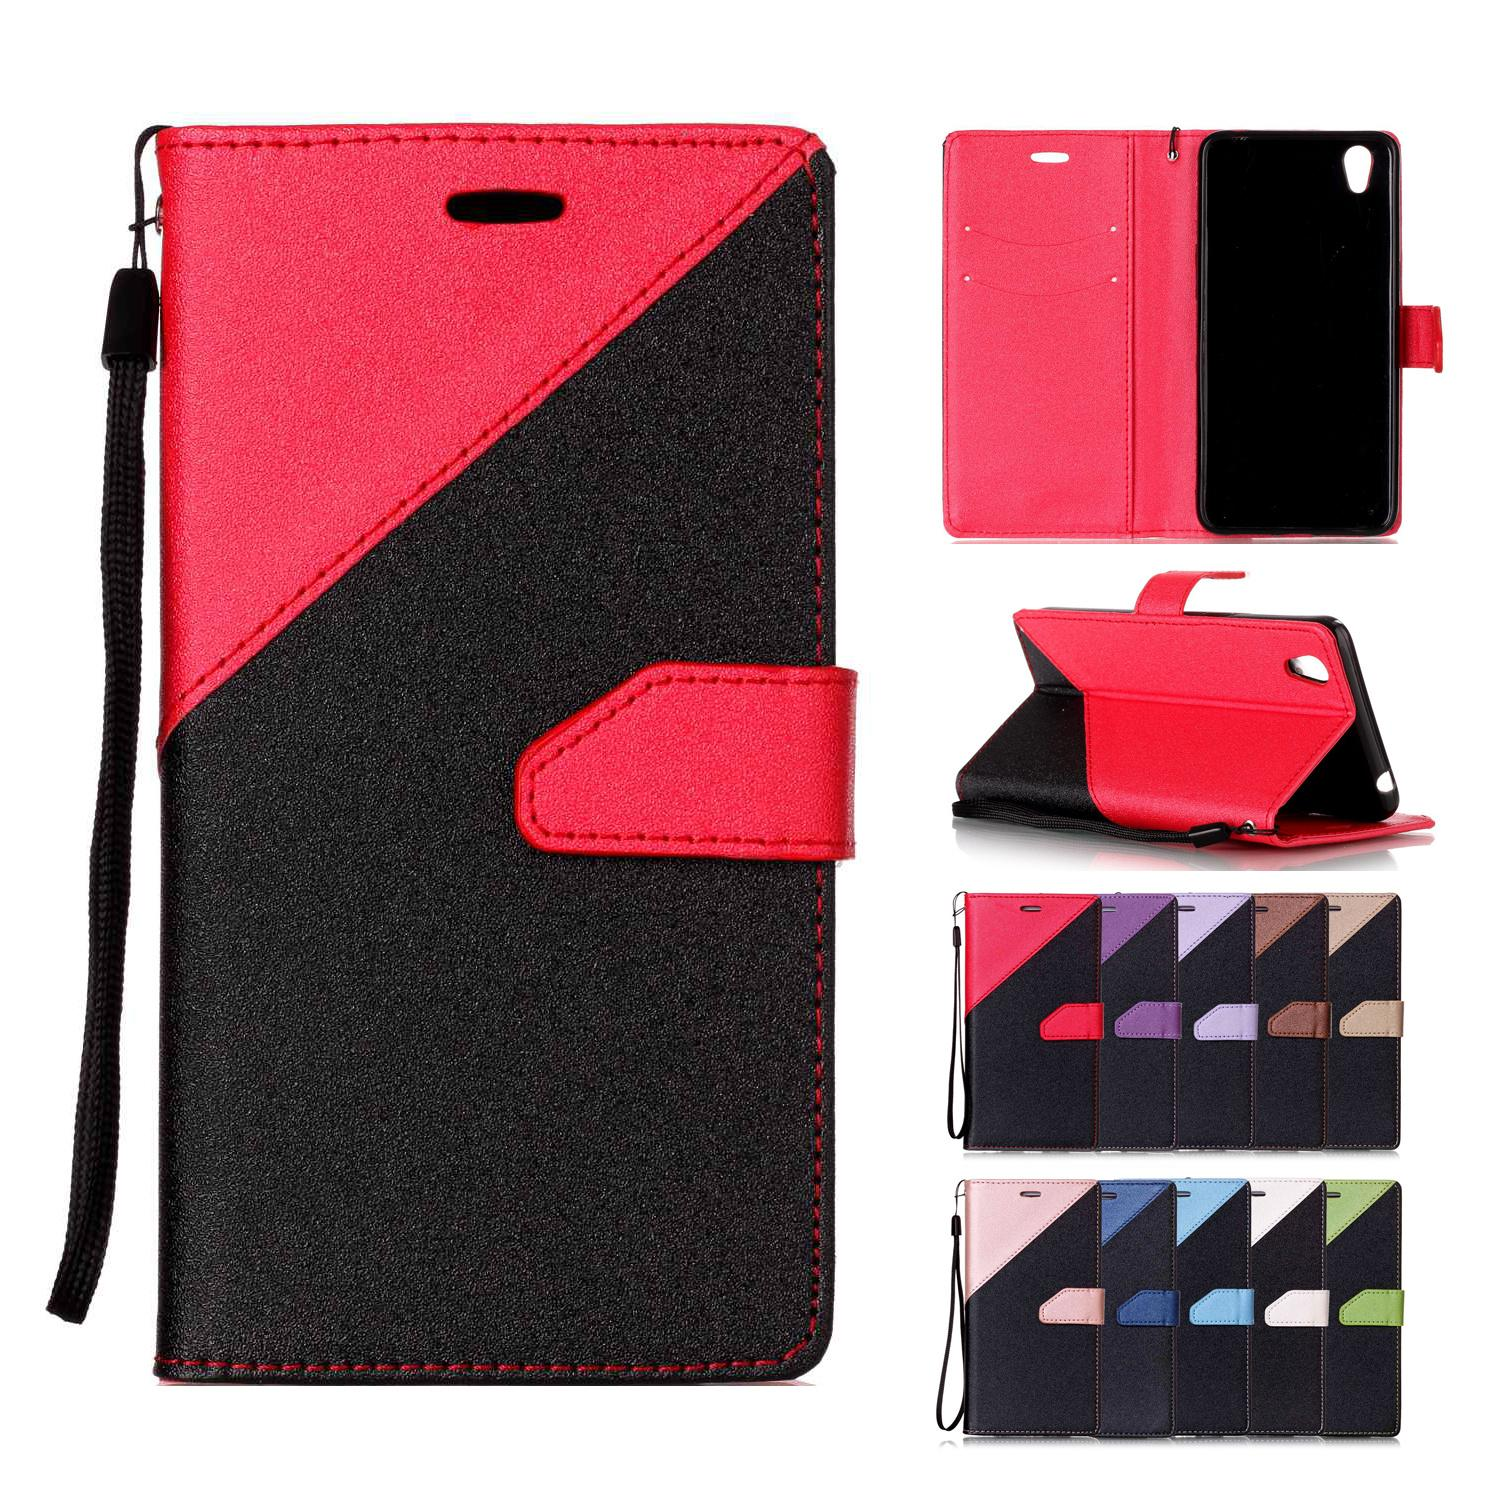 the best attitude 796fd a35ed Phone Cases for OPPO A37 Case Covers PU Leather with Card Slot Buckle Hand  Strap Sand Beach Surface Succinct Style